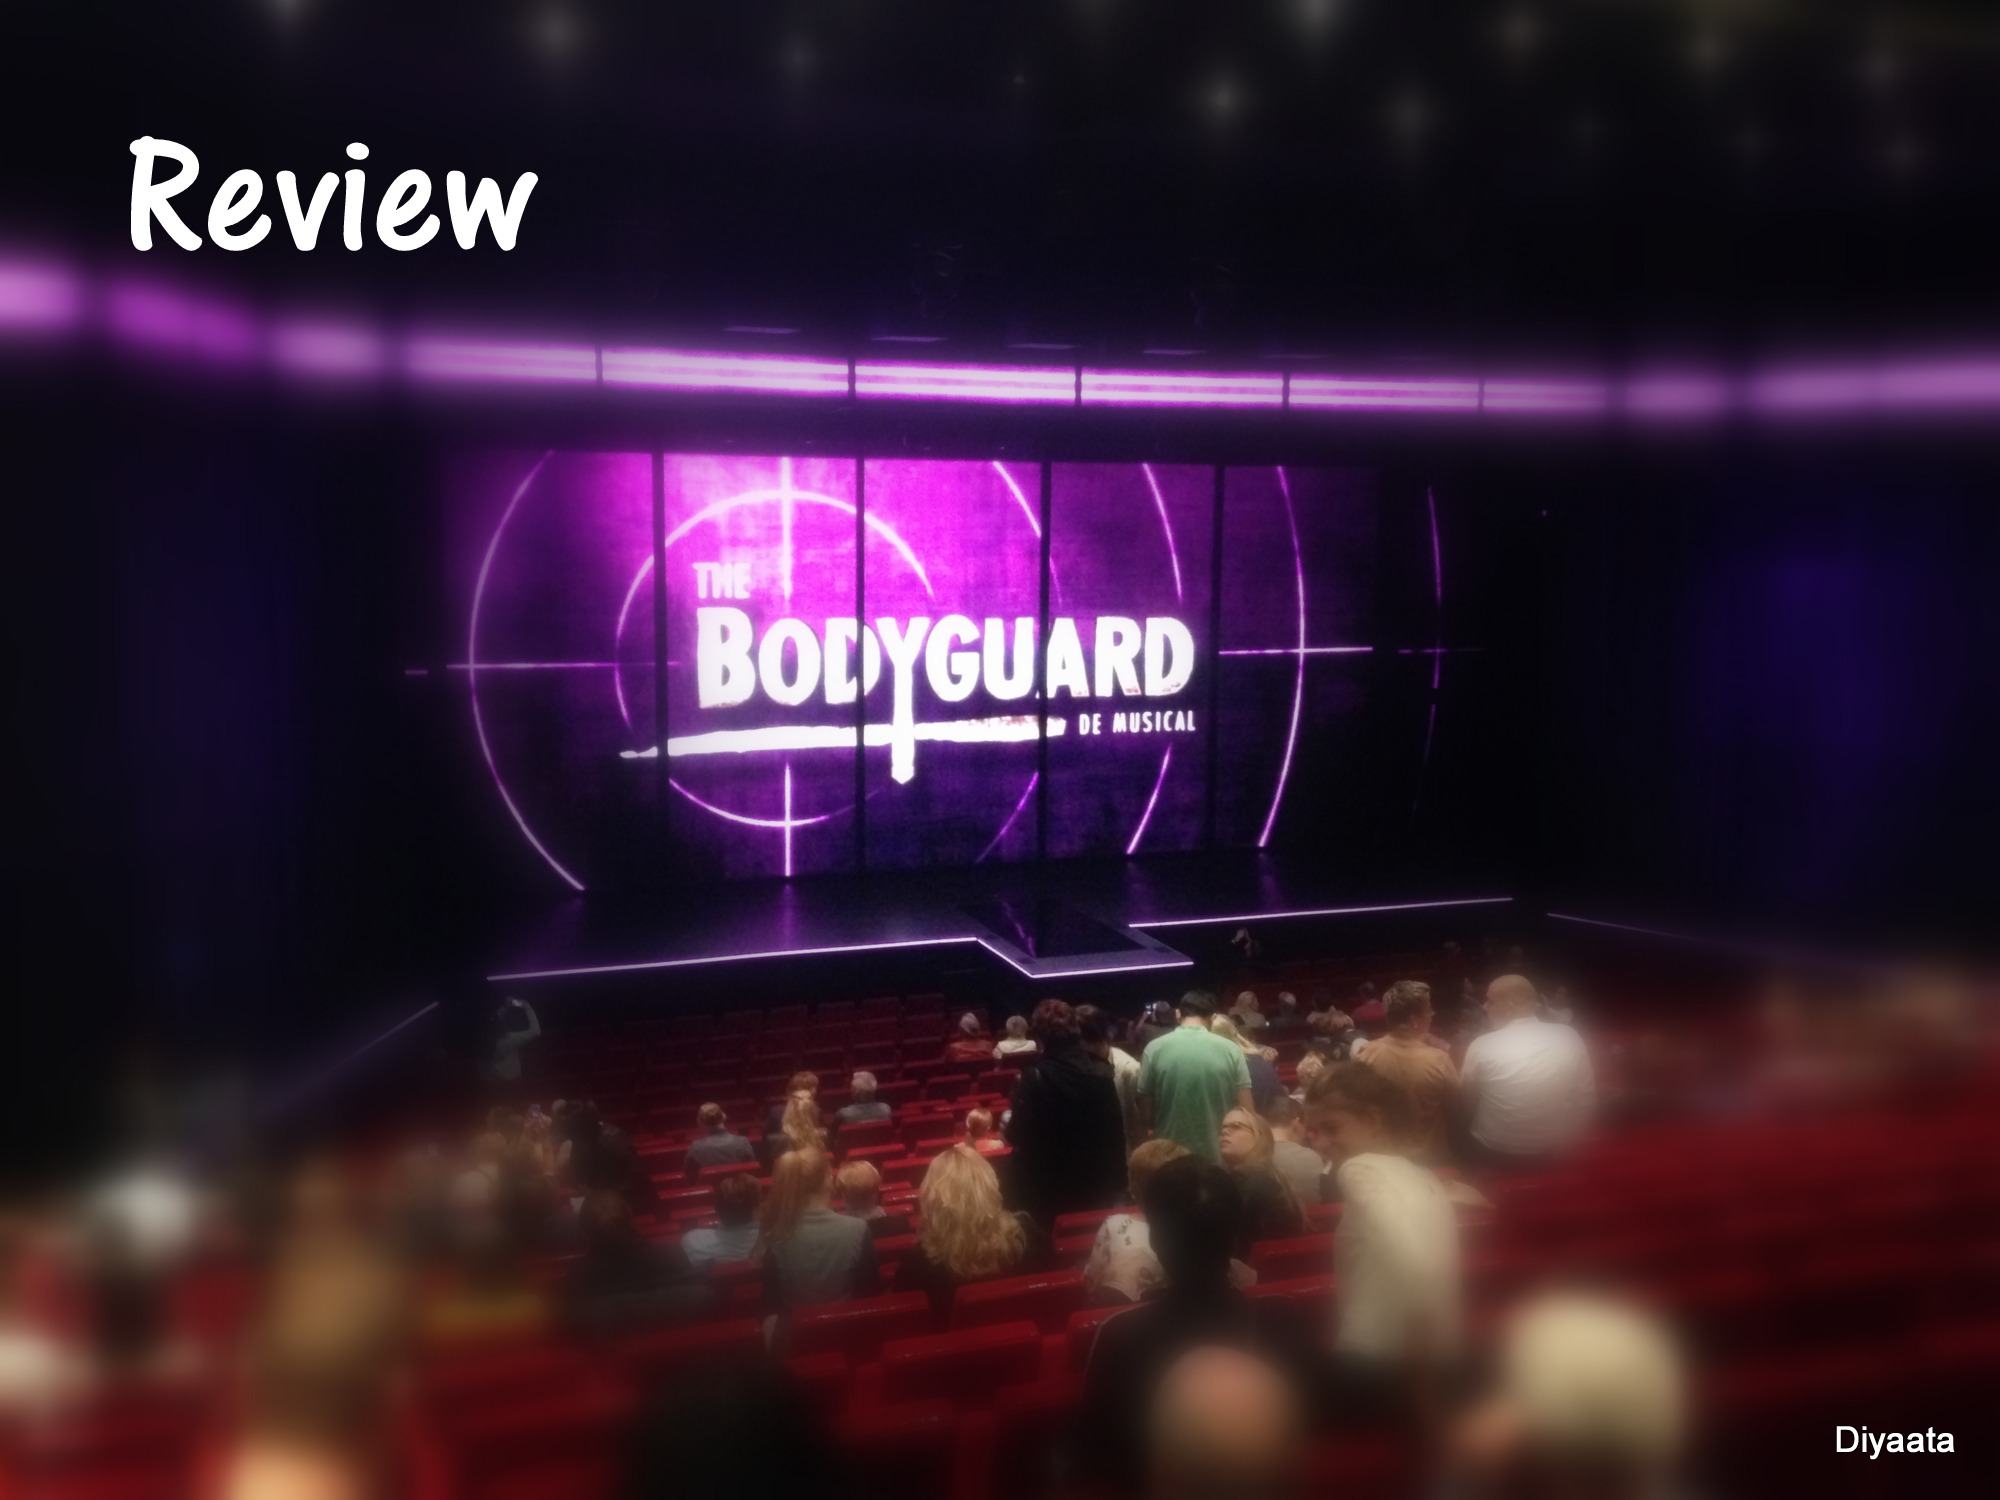 Review musical the Bodyguard